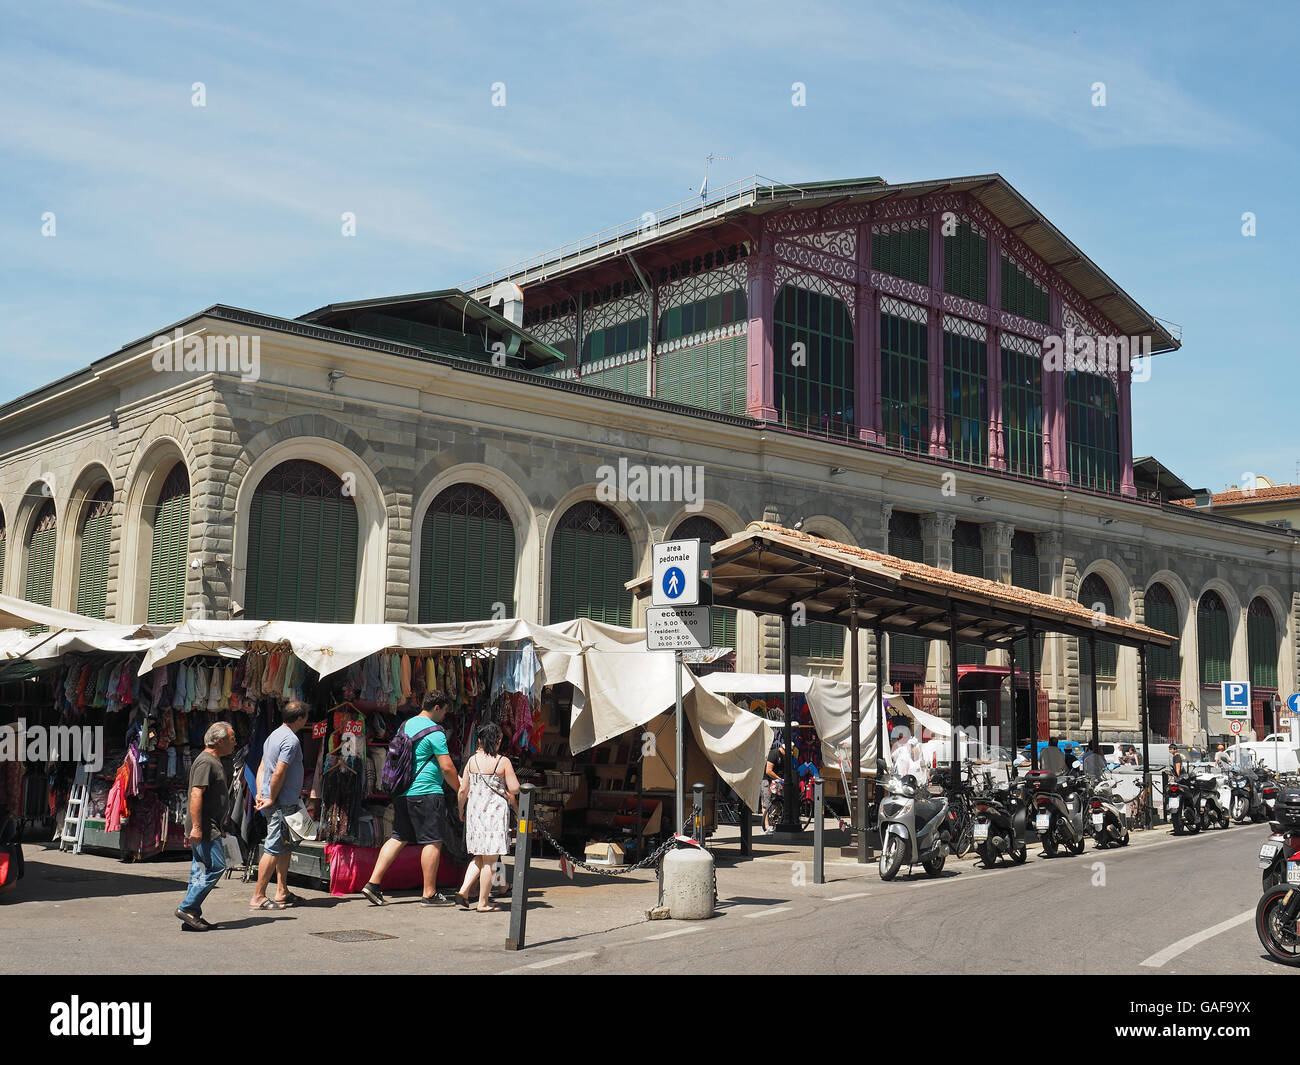 Exterior view of the Mercato Centrale central market from Plazza del Mercato Centrale in the Italian city of Florence - Stock Image